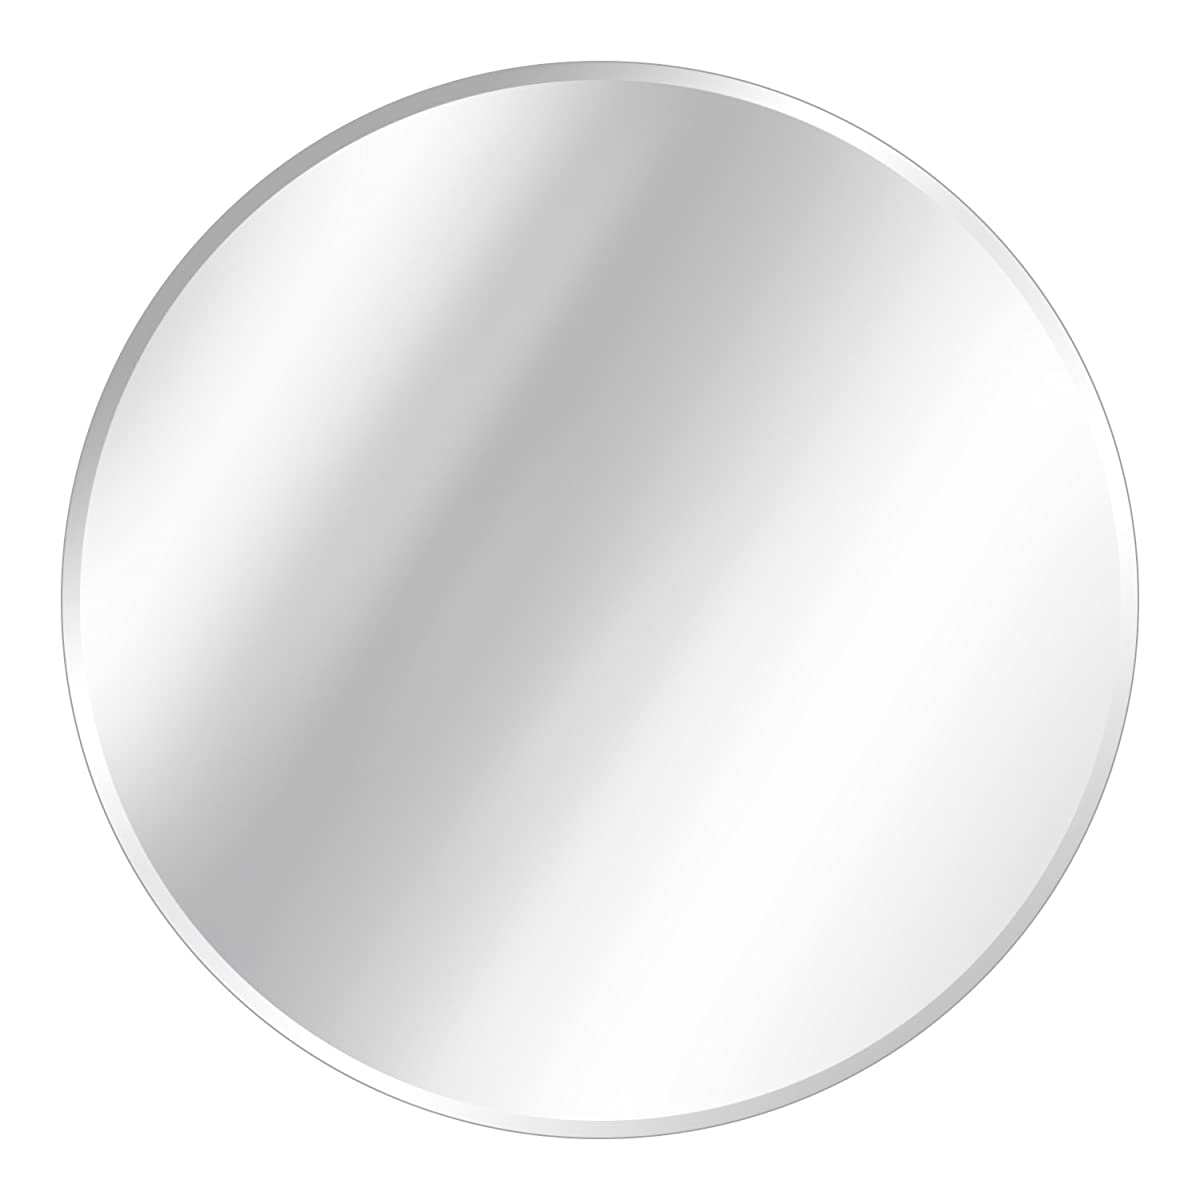 Round Beveled Polished Frameless Wall Mirror With Hooks 36 L X 36 W